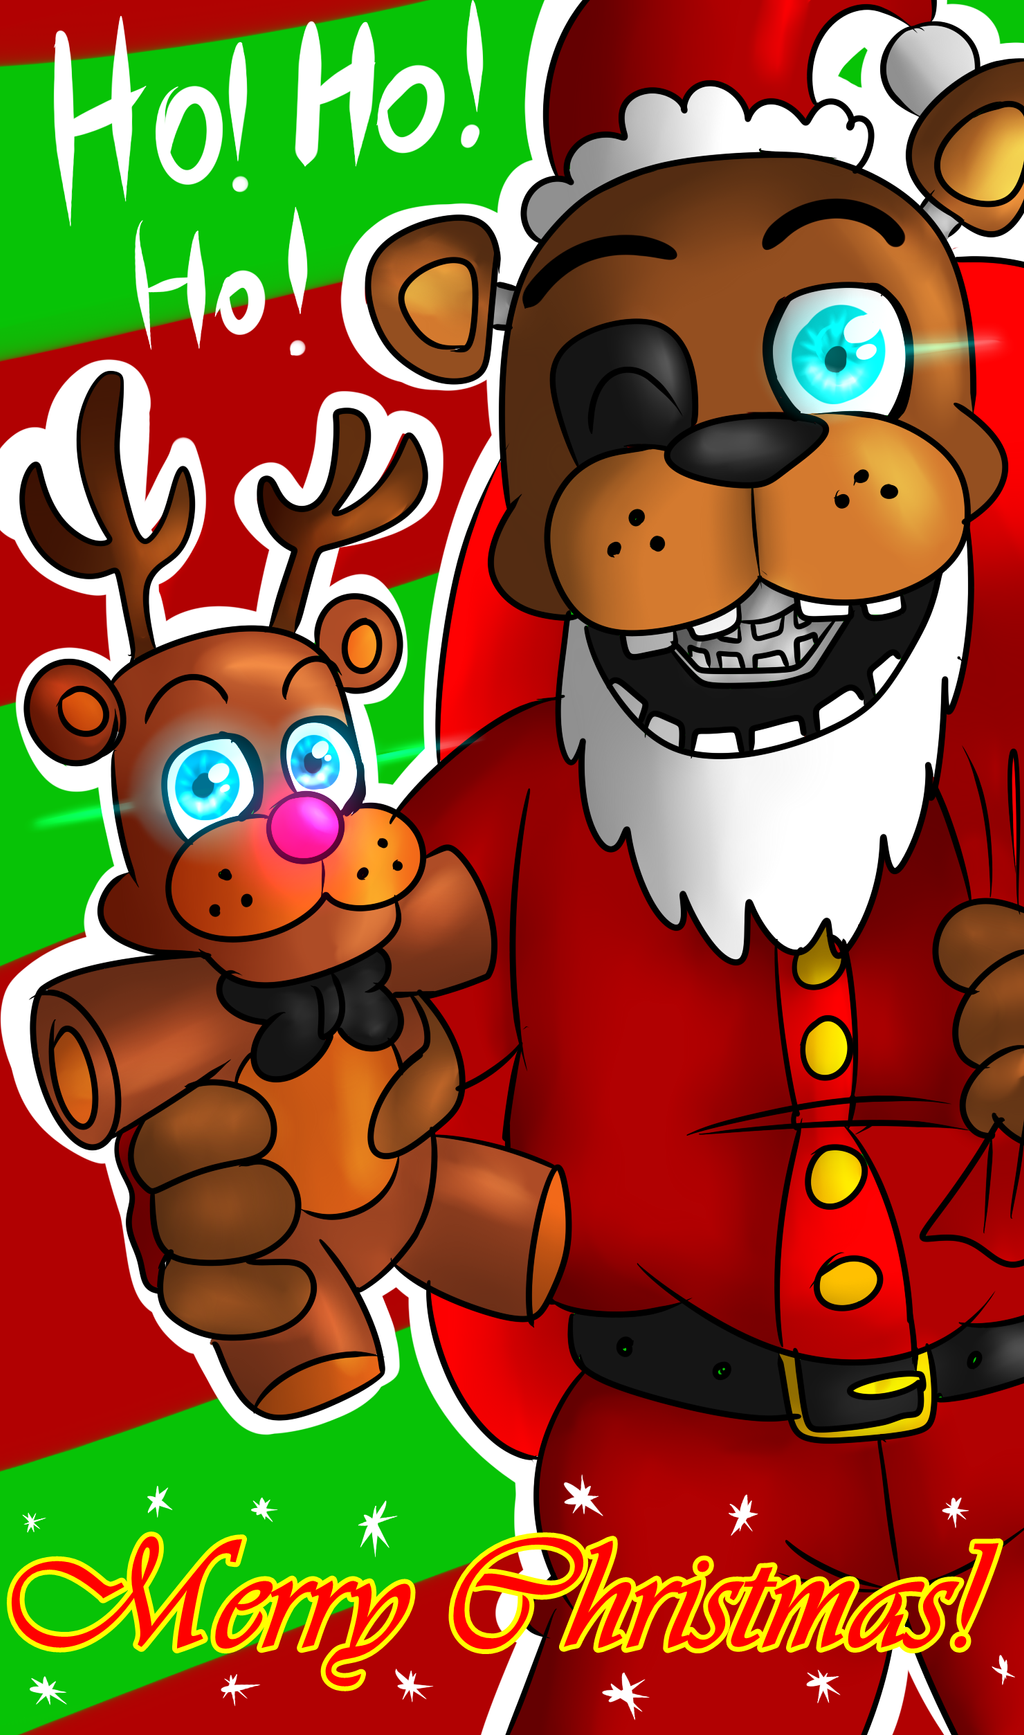 Merry Christmas!! by FNaF2FAN on DeviantArt